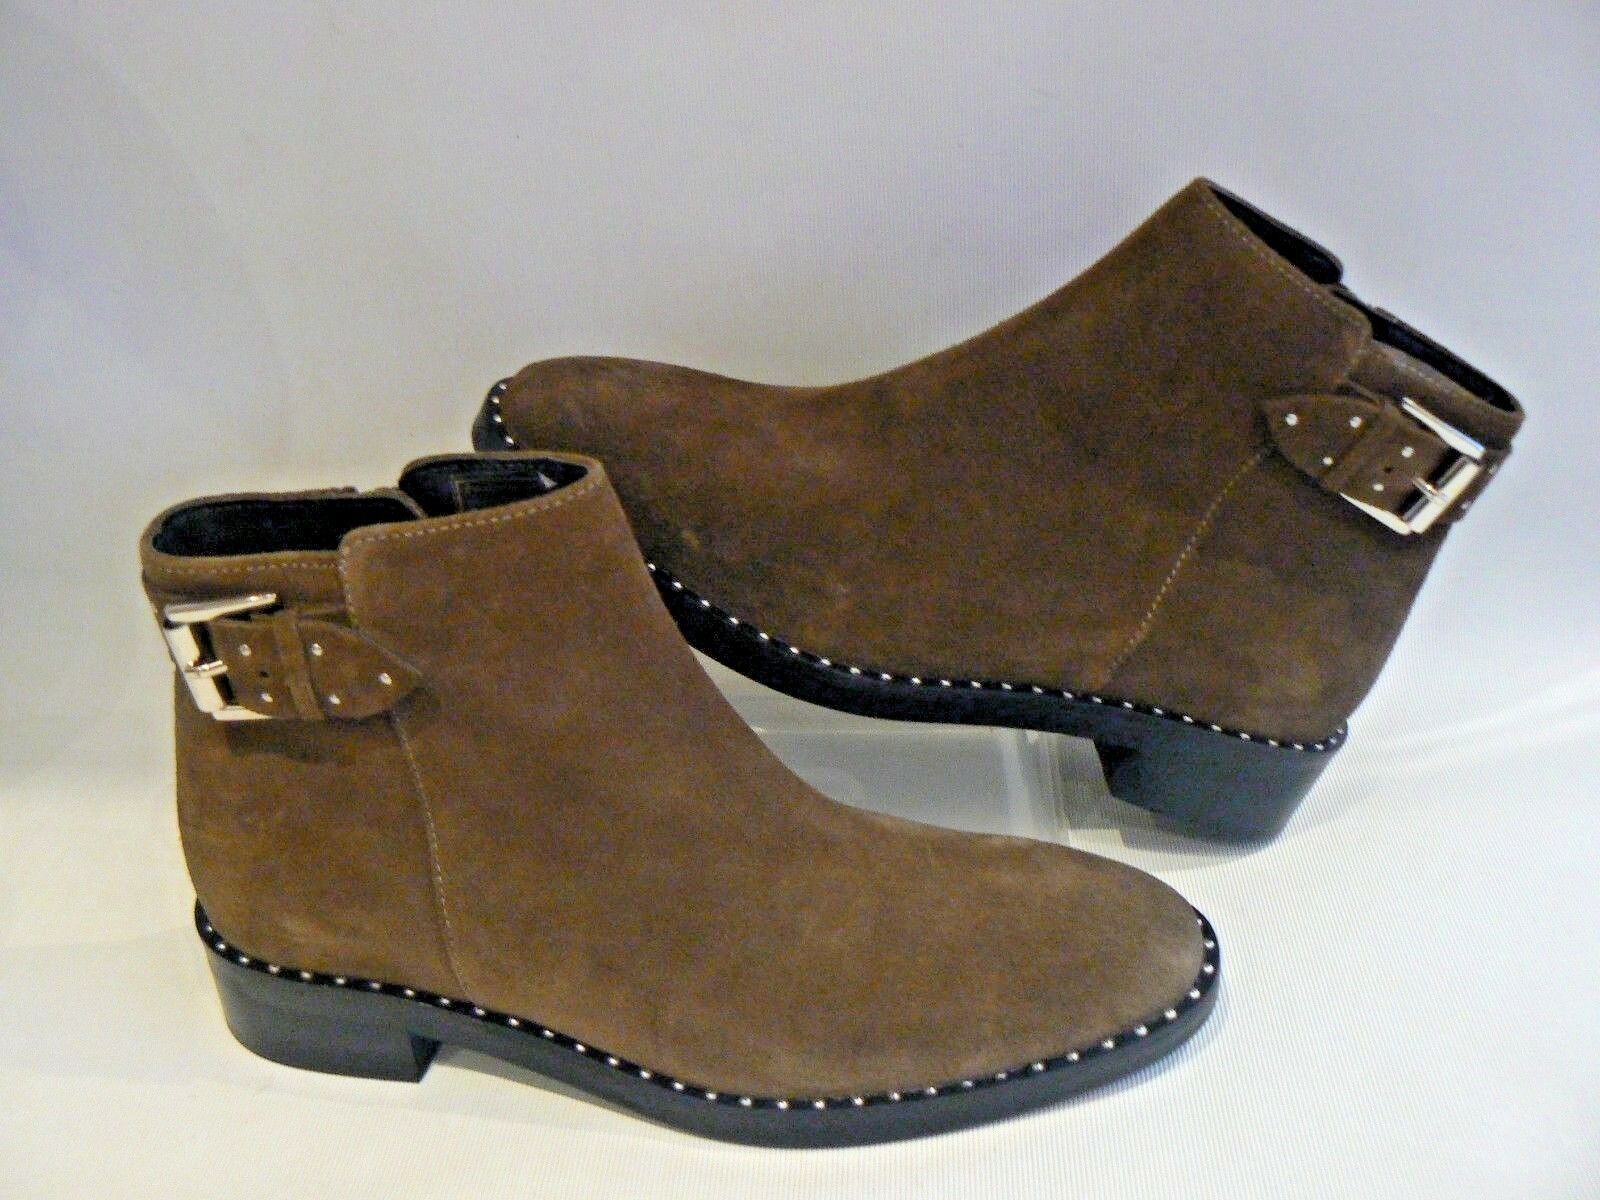 MARKS & SPENCER Suede Ankle Stiefel Insoila UK Größe 4.5 - 7.5 NEW